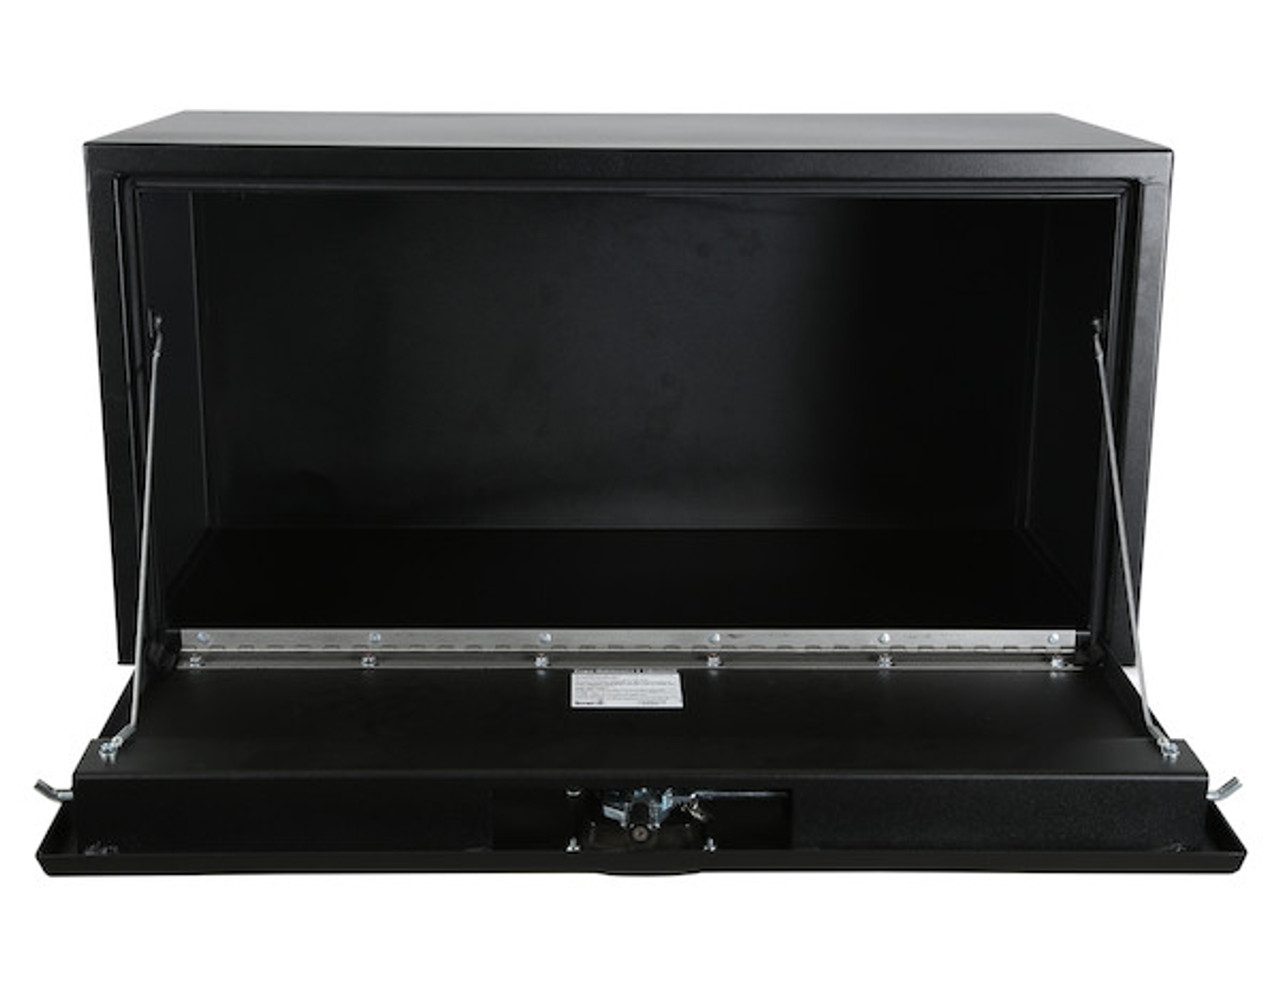 """1734505 BUYERS PRODUCTS TEXTURED MATTE BLACK STEEL UNDERBODY TRUCK TOOLBOX WITH 3-POINT LATCH 24""""Hx24""""Dx36""""W  Picture # 5"""